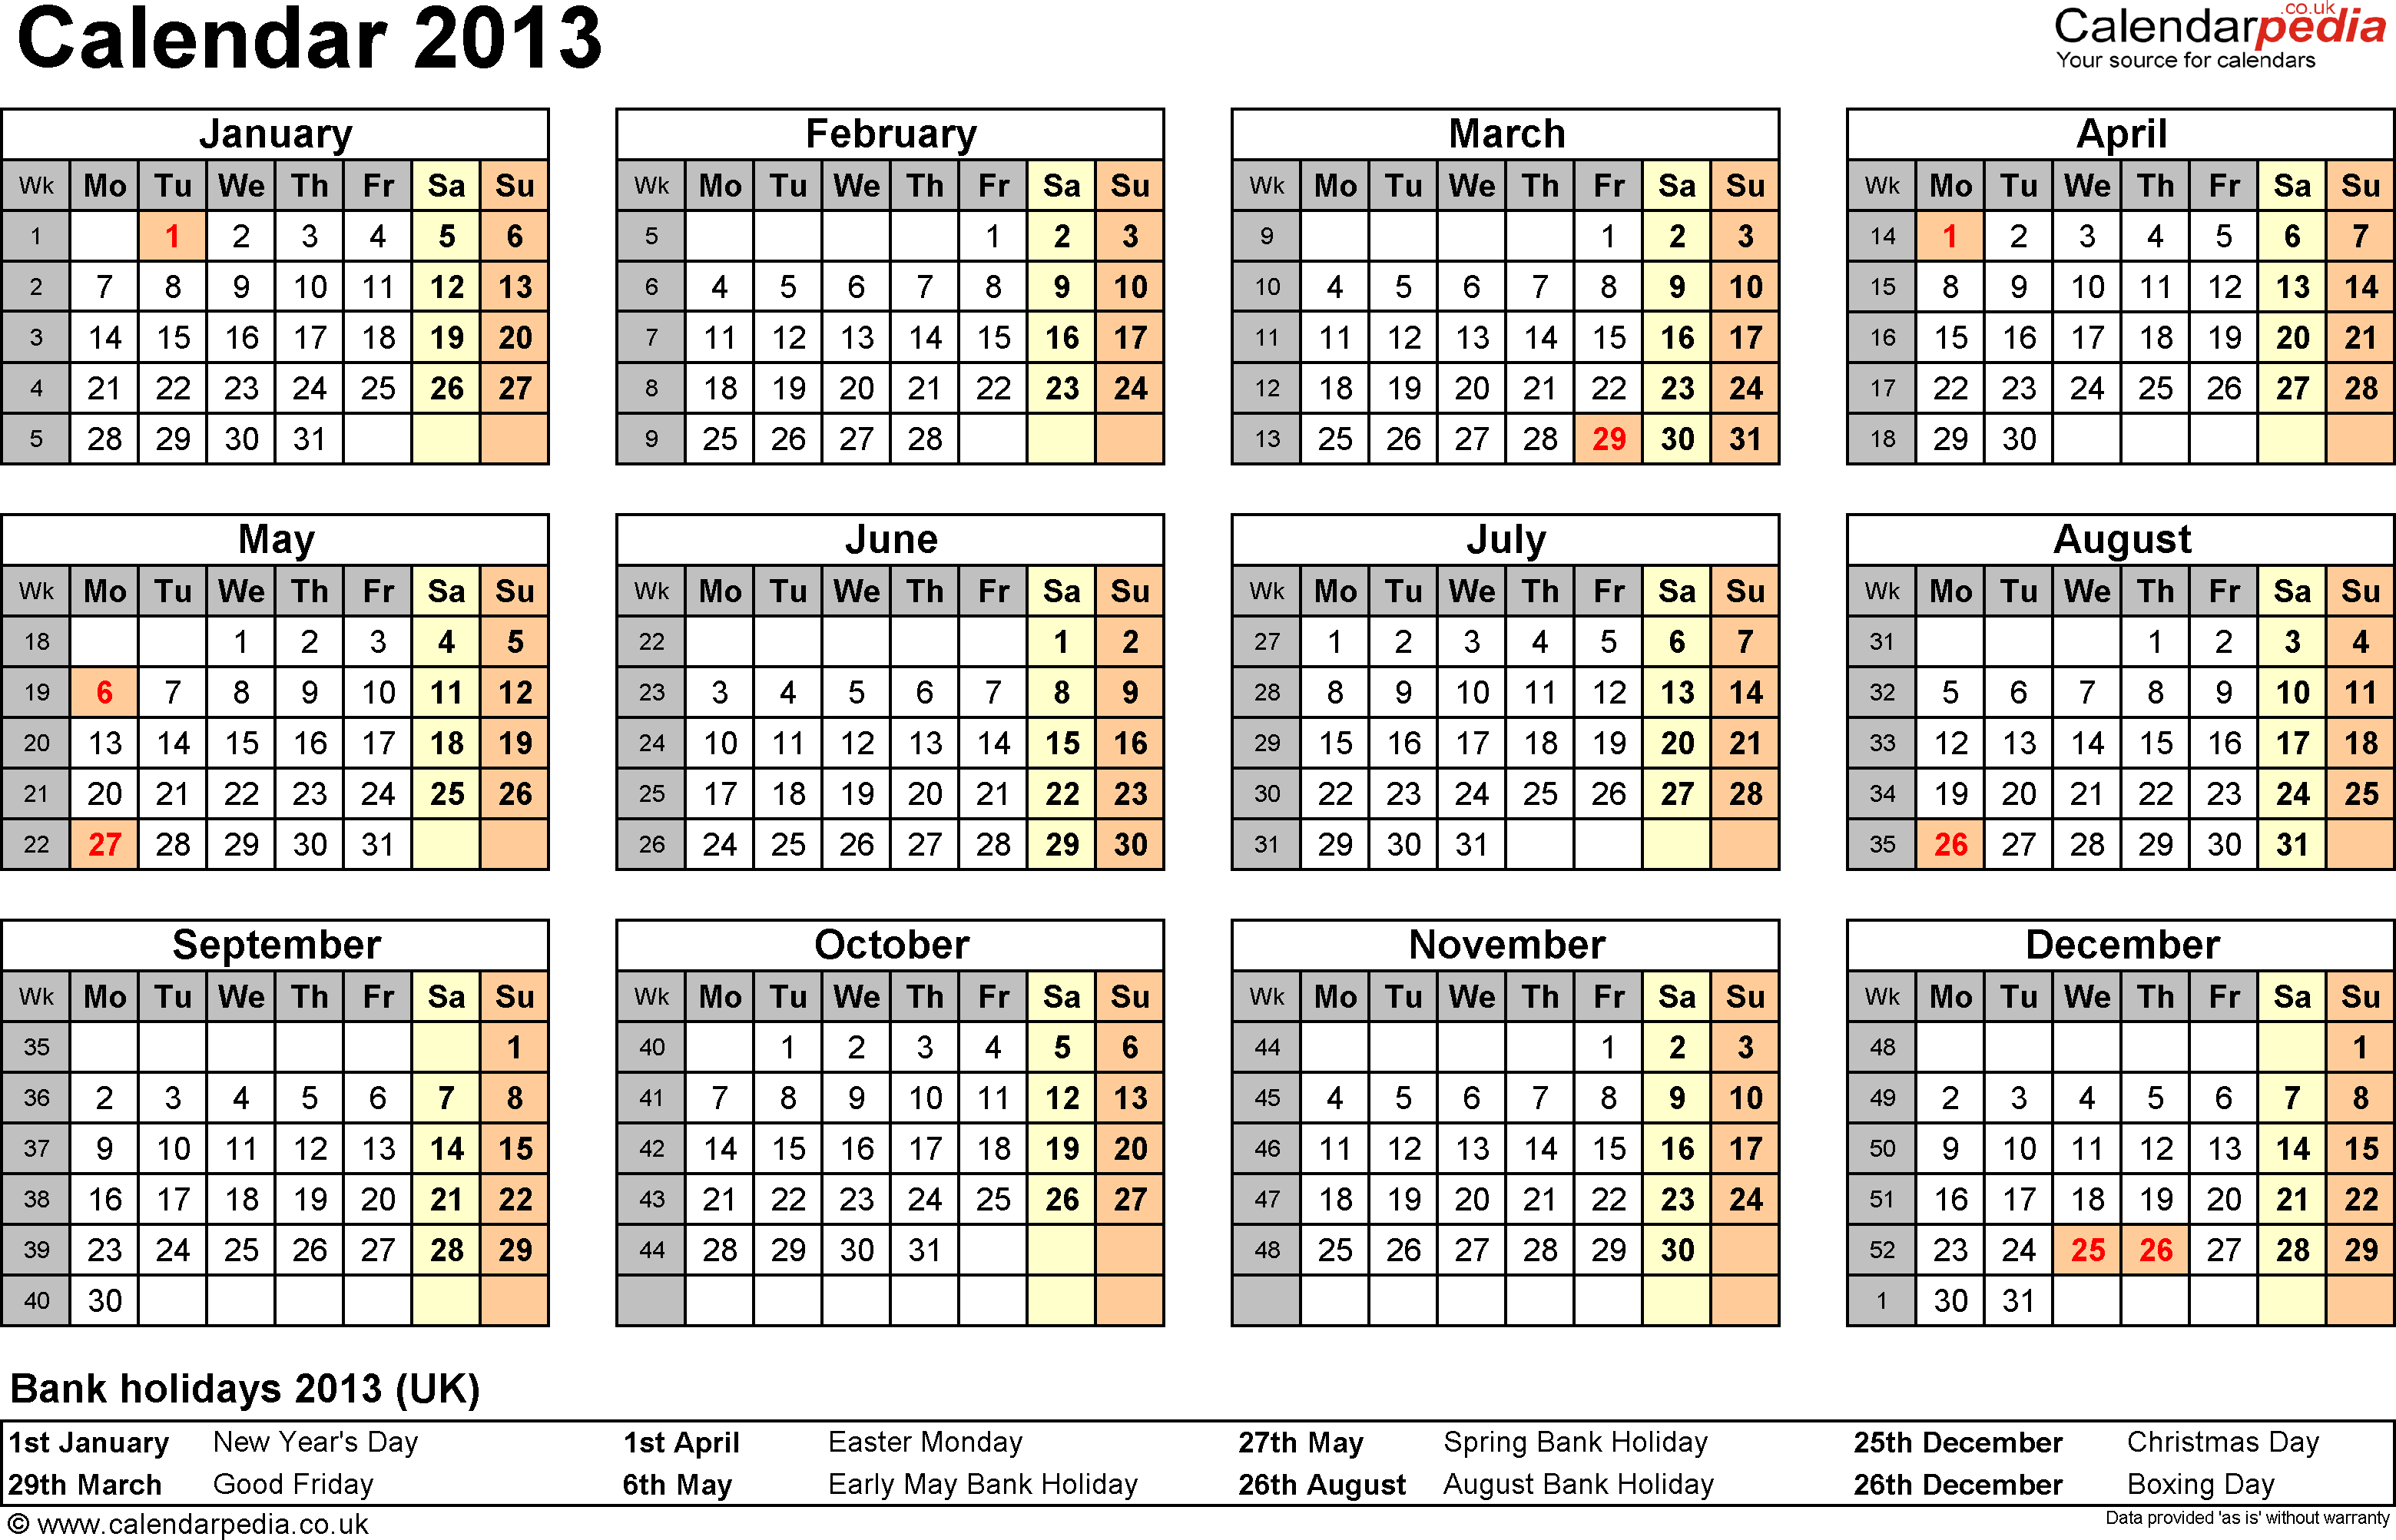 Download Template 7: Yearly calendar 2013 as Word template, year overview, 1 page